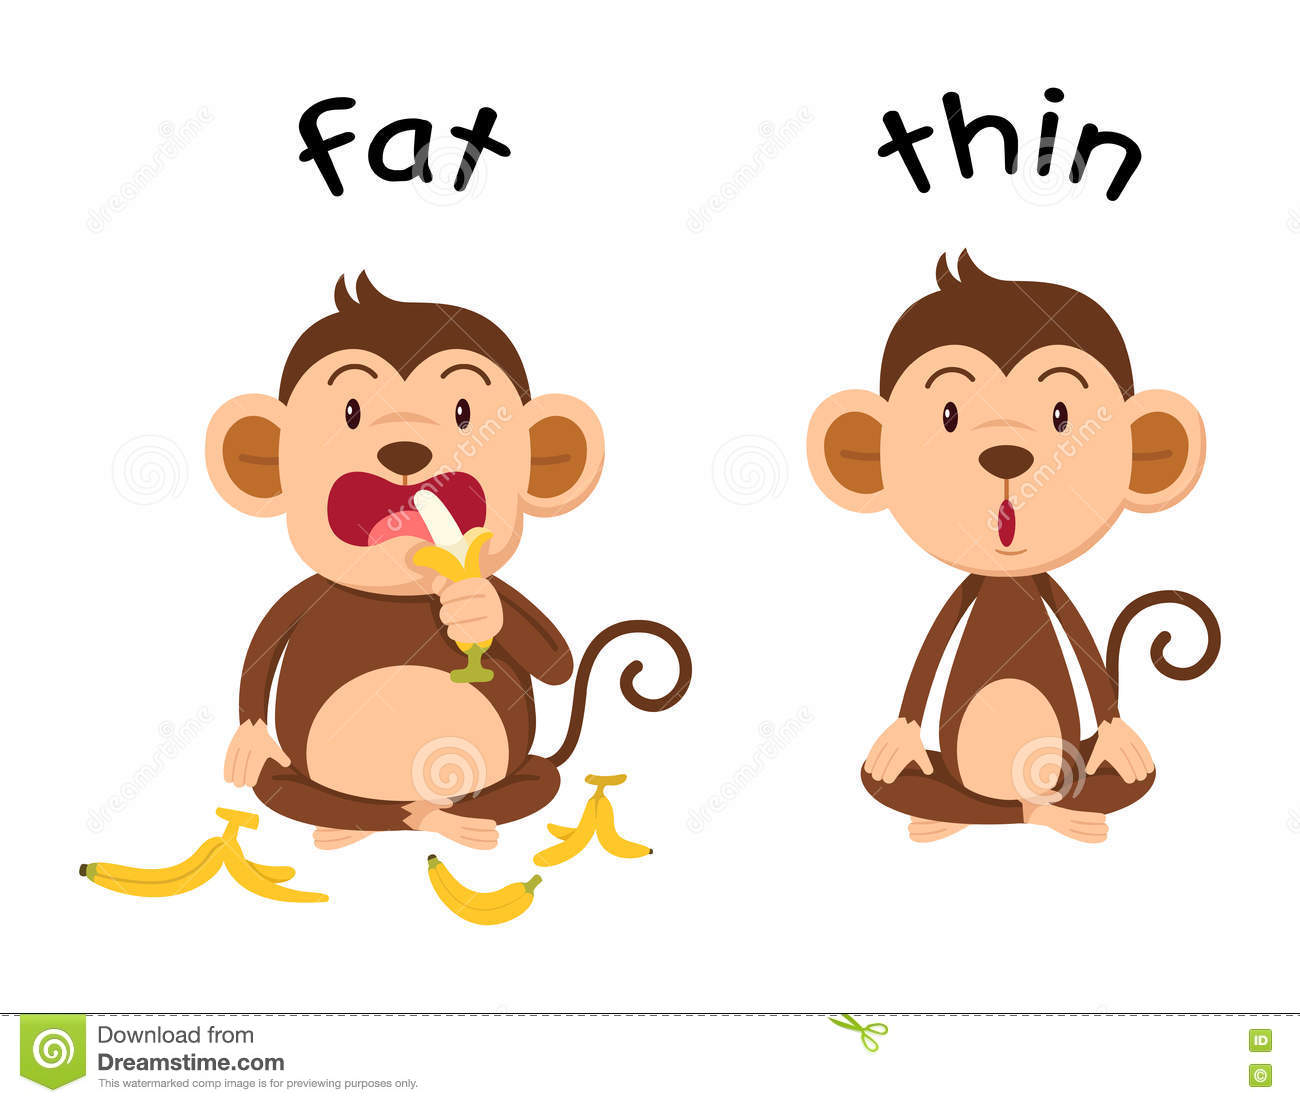 Fat and thin clipart graphic black and white stock Thin and fat clipart - ClipartFest graphic black and white stock